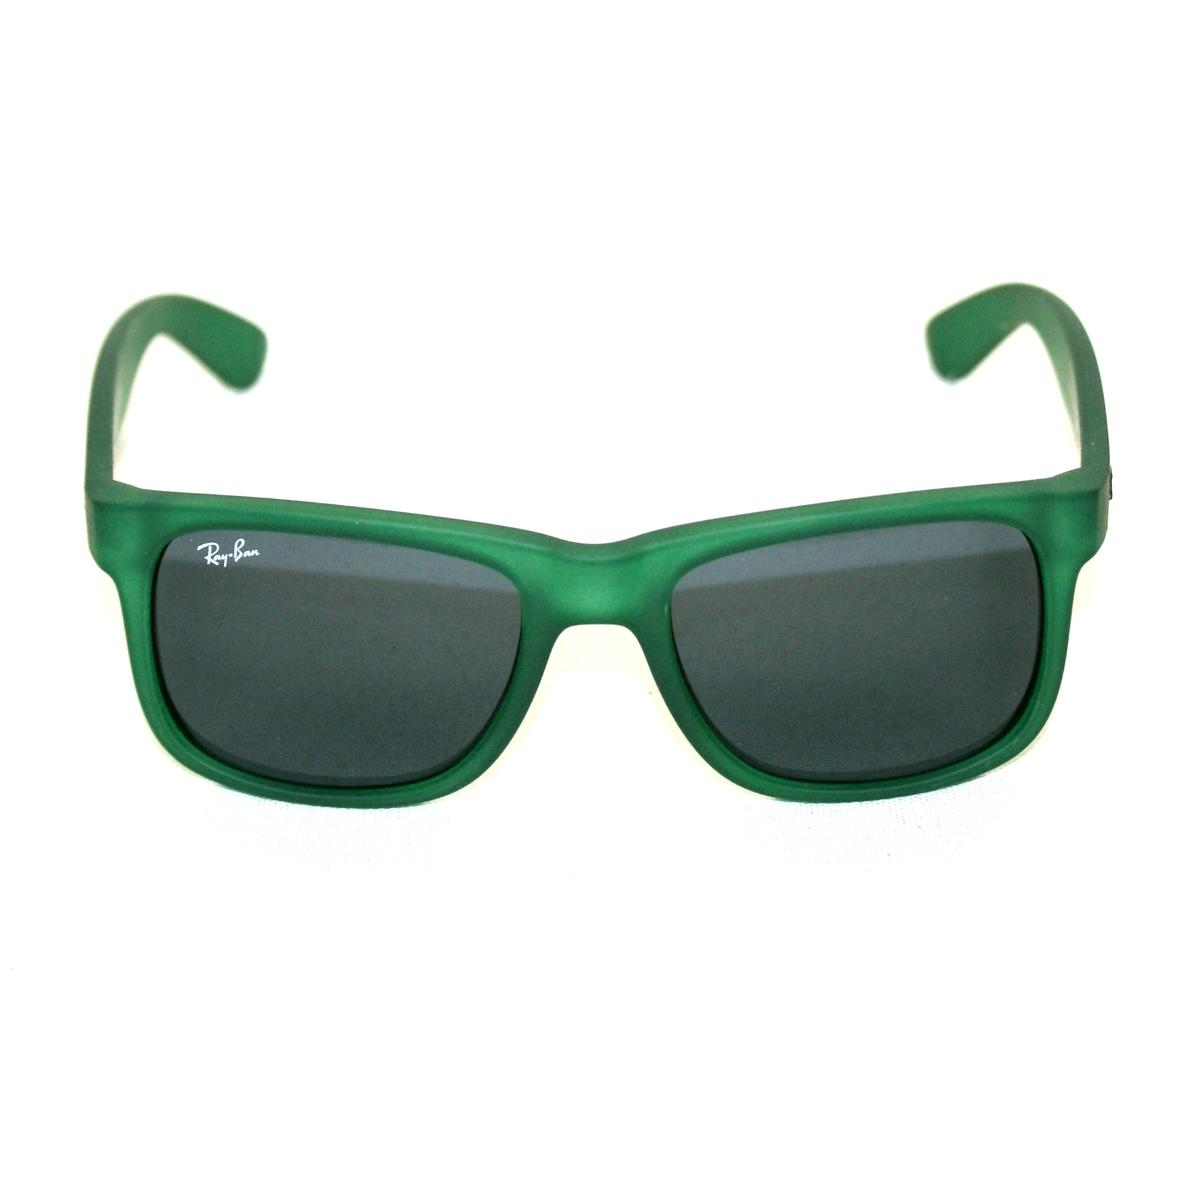 Ray Ban Justin Matte Green Sunglasses #RB4165 897/87 51 16